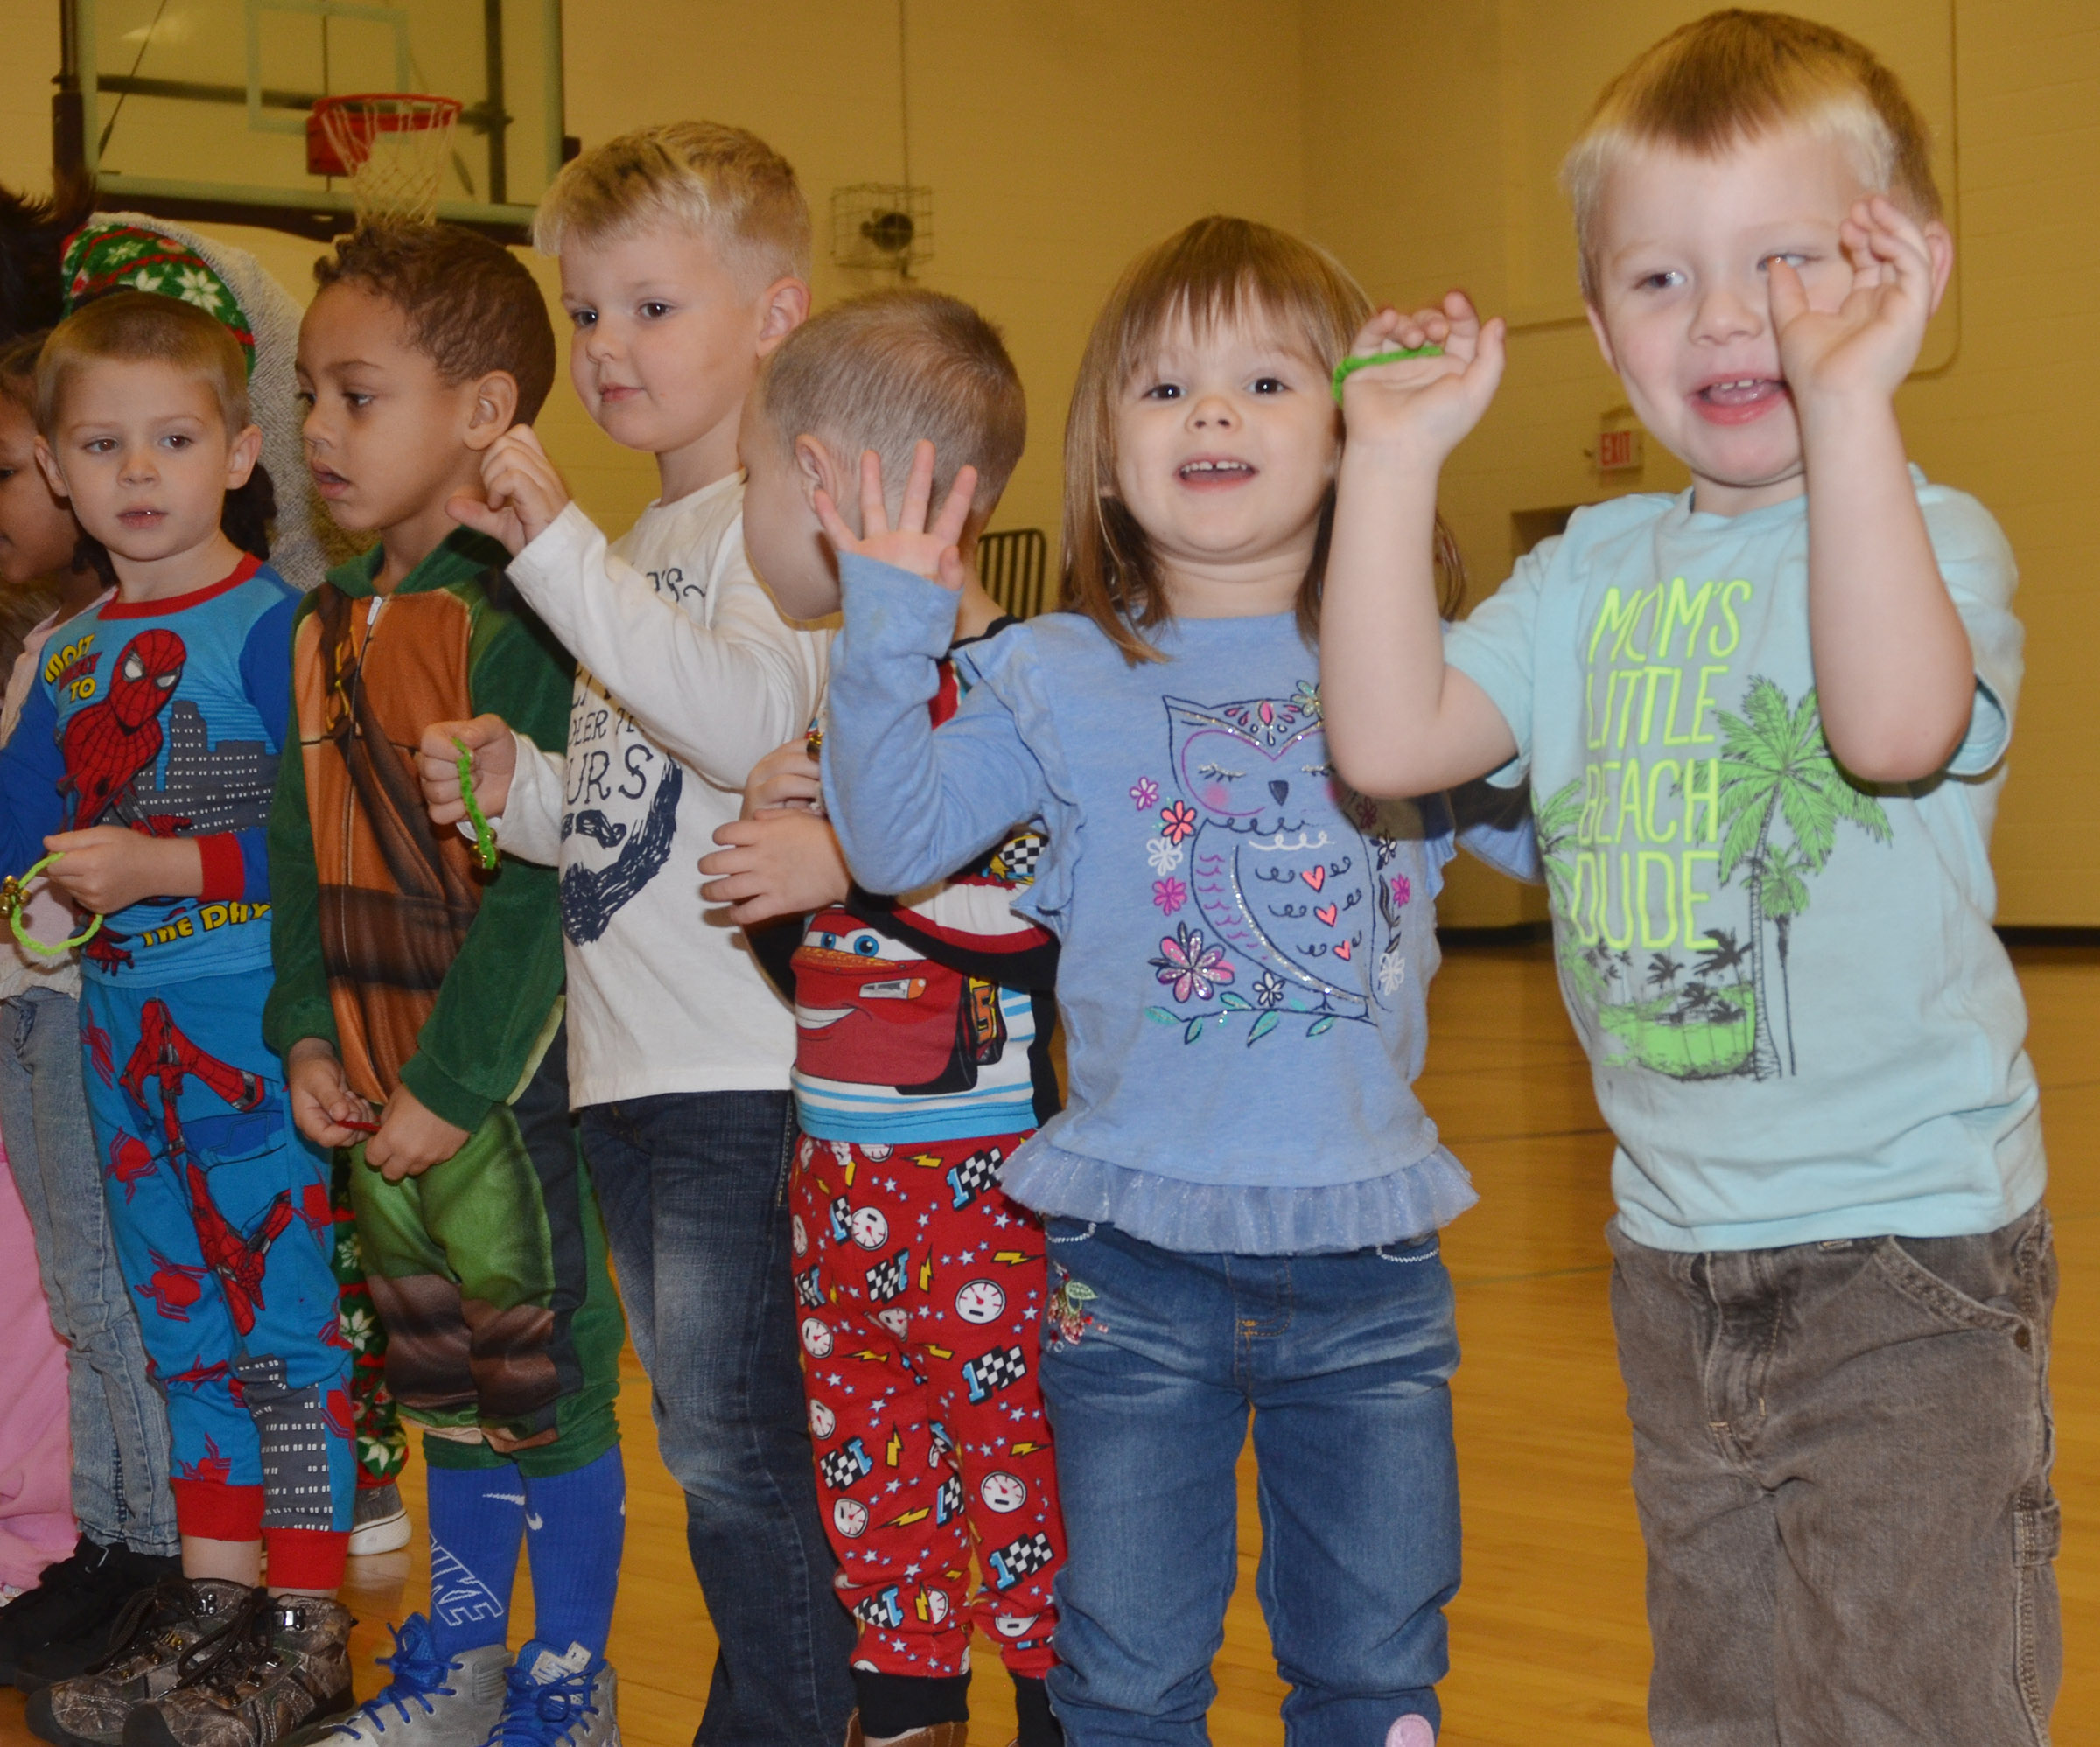 CES preschool students Julie Lasater, at left, and Landon Allen perform with their classmates.